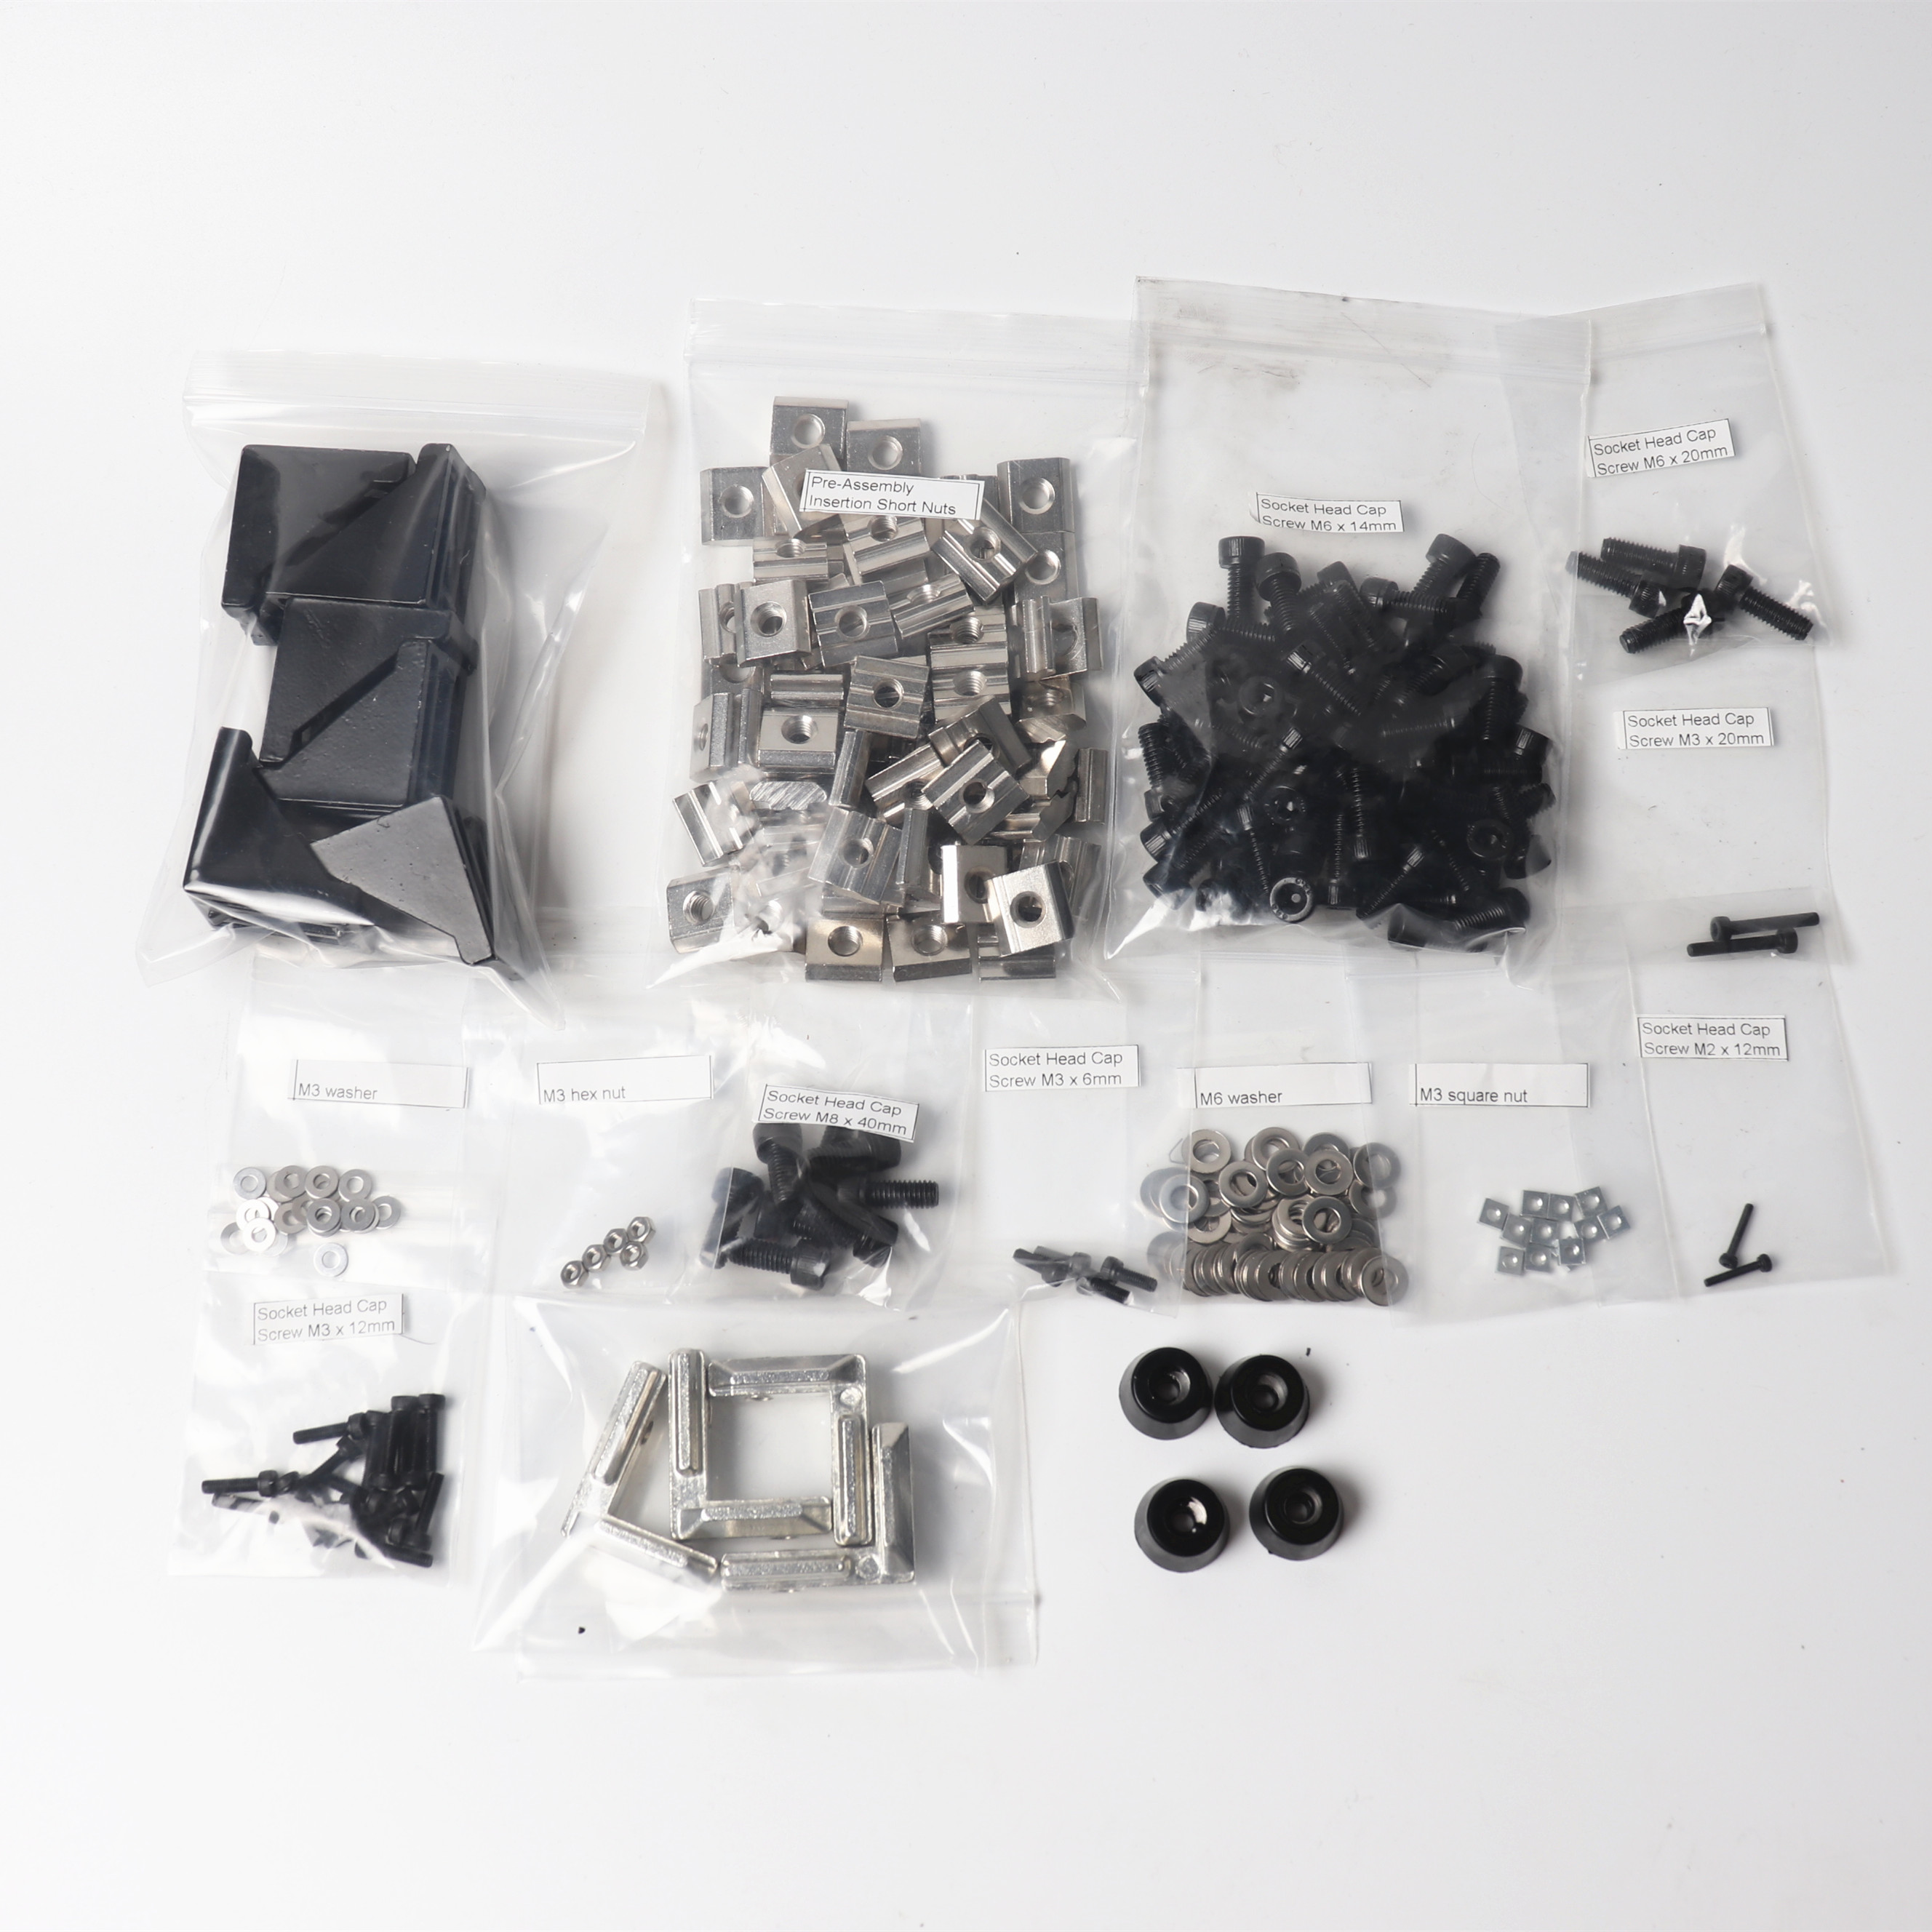 Faithful Screws Nuts Kit For Upgrading Prusa I3 Mk2/mk3 Zaribo/haribo 3d Printer Diy Blind L Bracket Ruber Feet